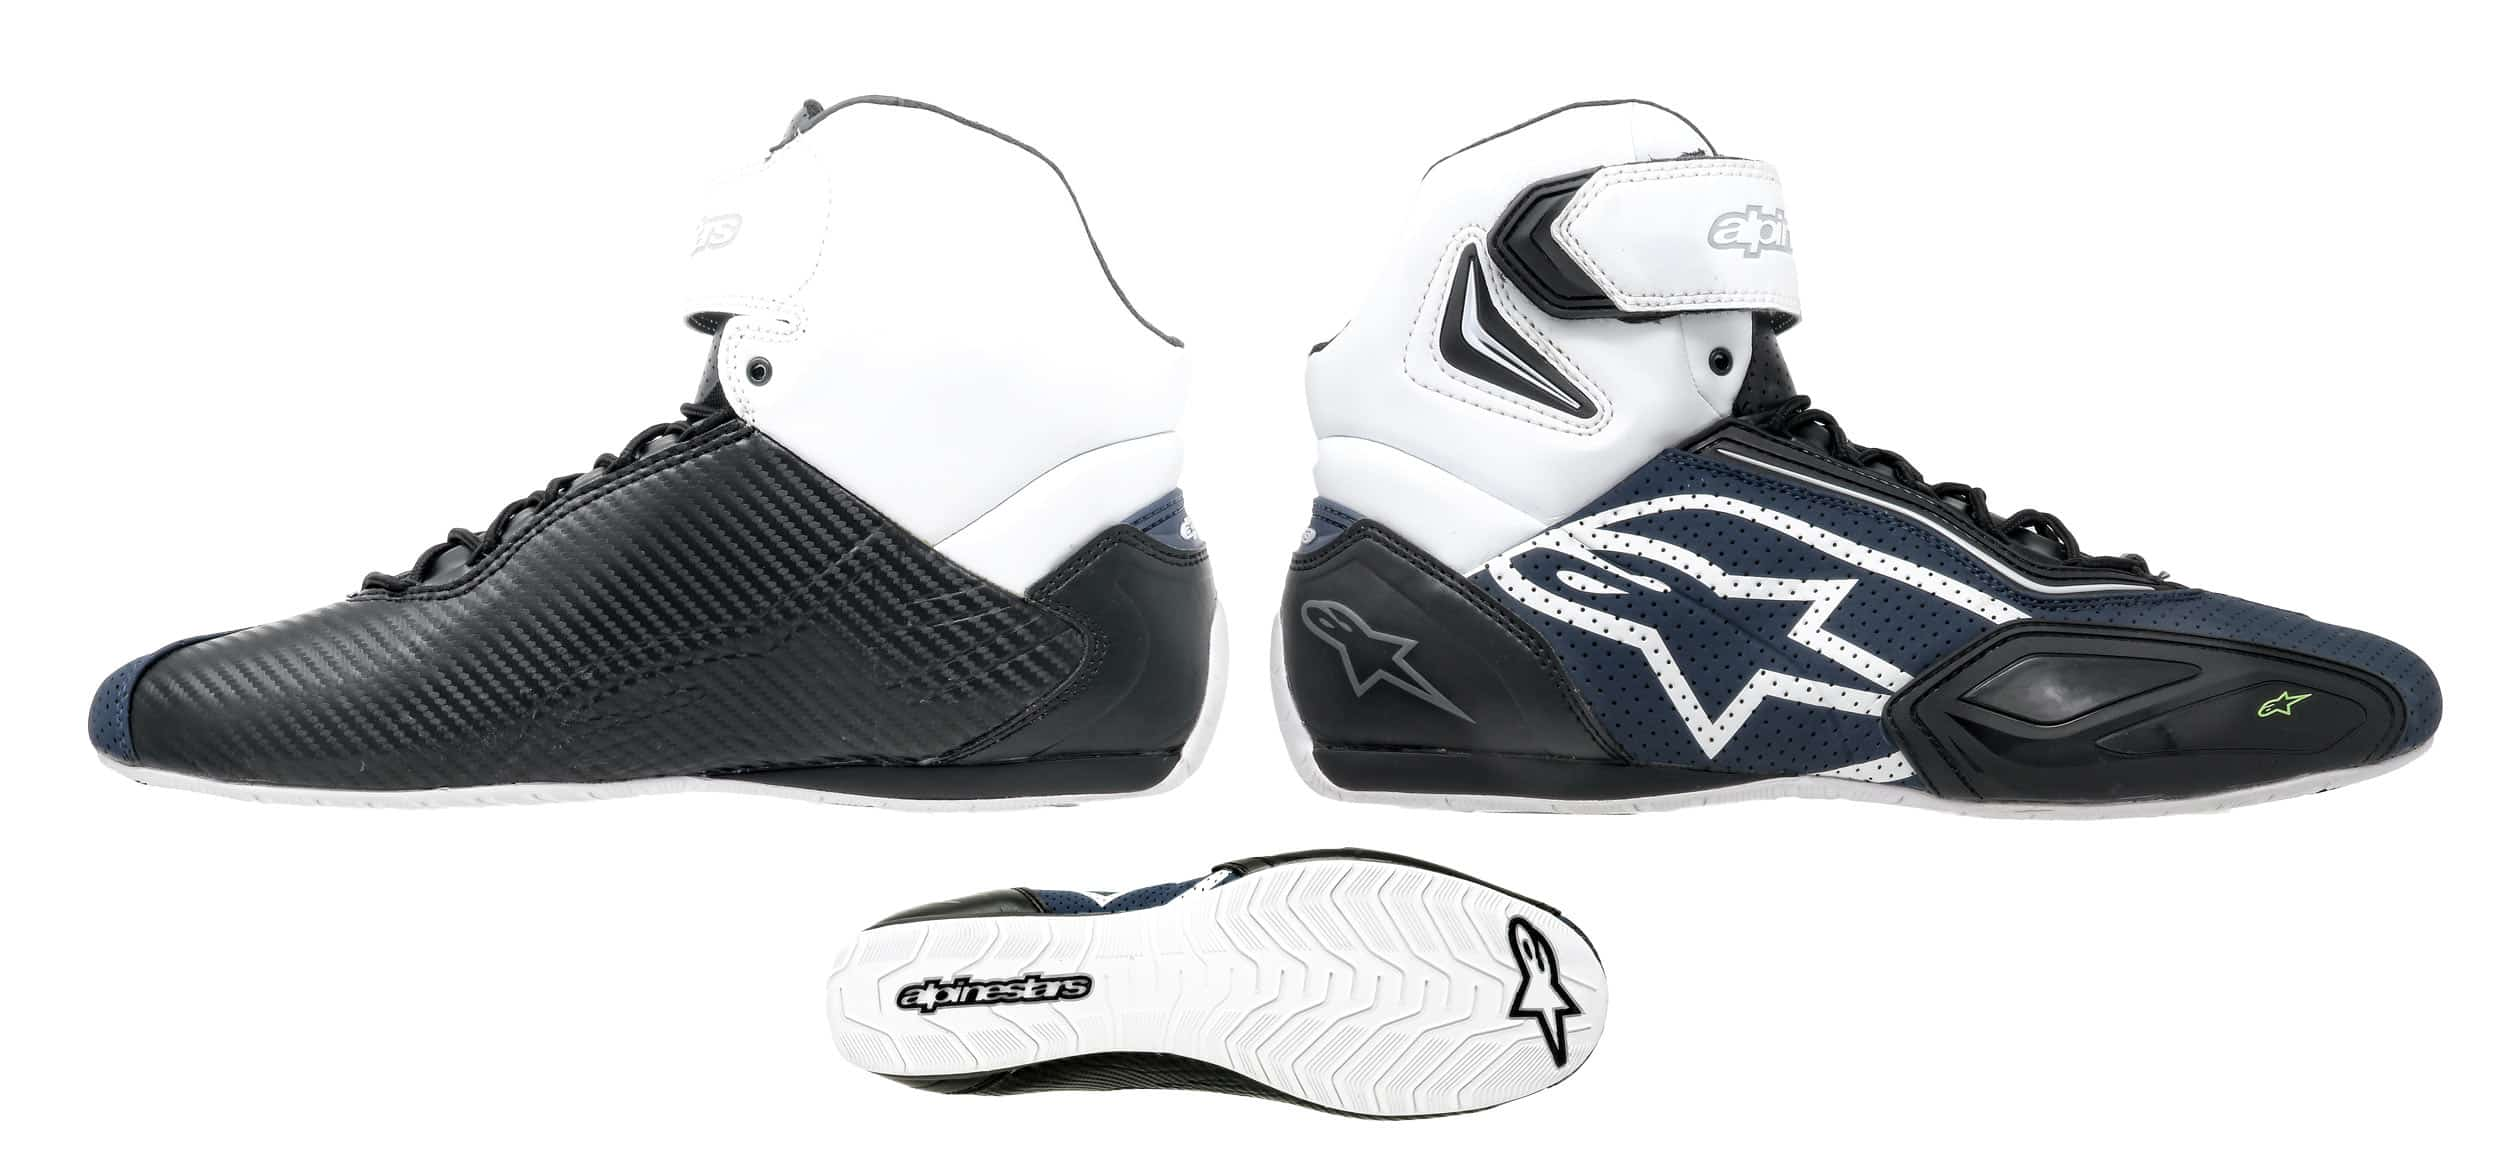 Alpinestars Faster-2 riding shoes